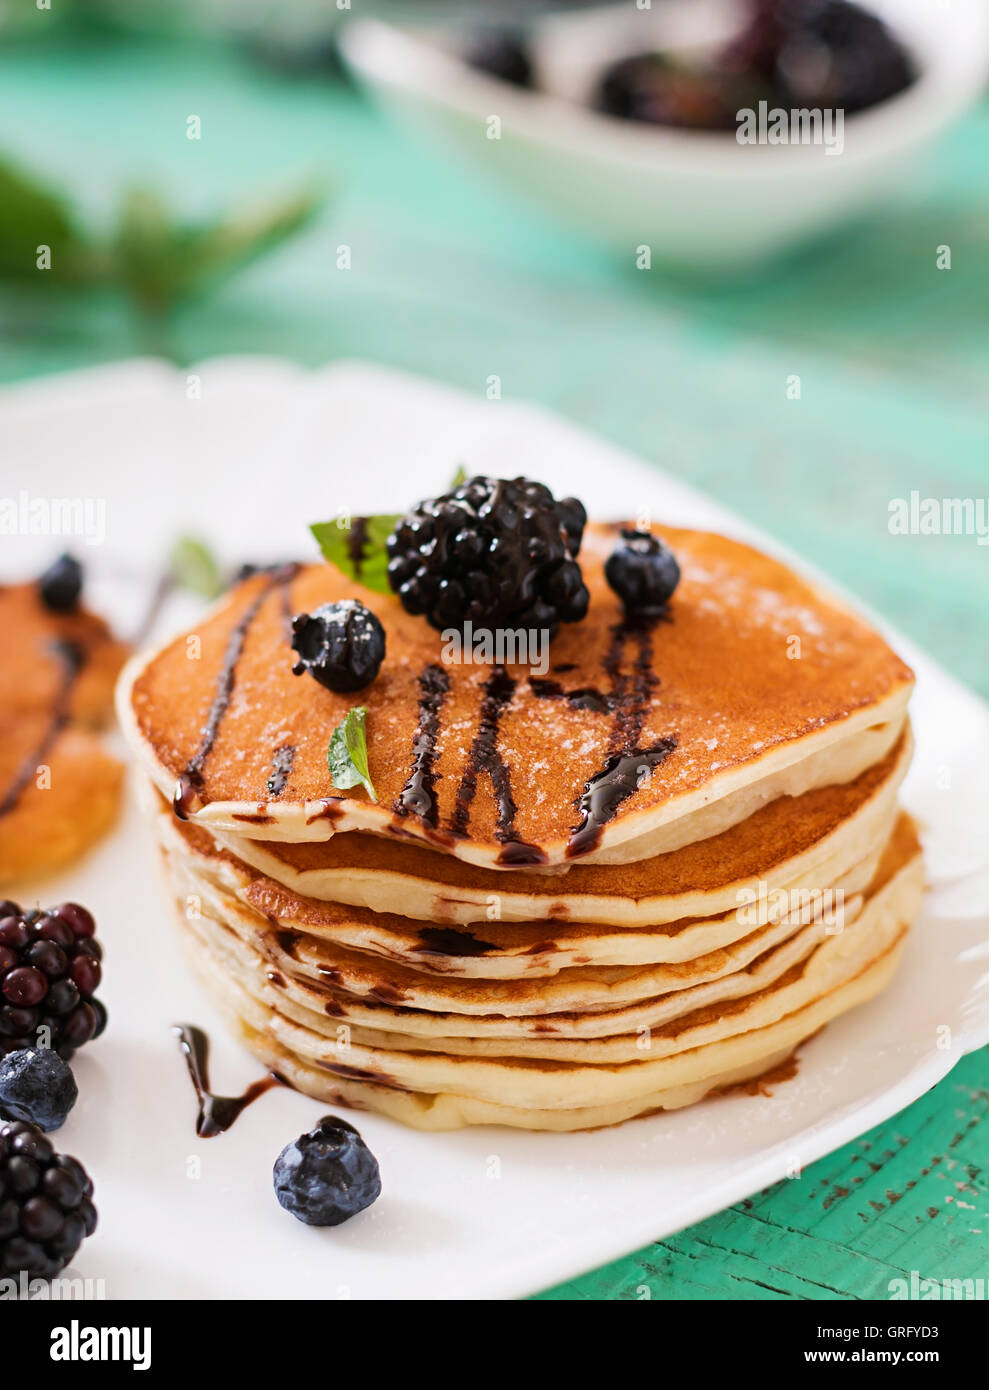 Delicious pancakes with blackberries and chocolate. - Stock Image